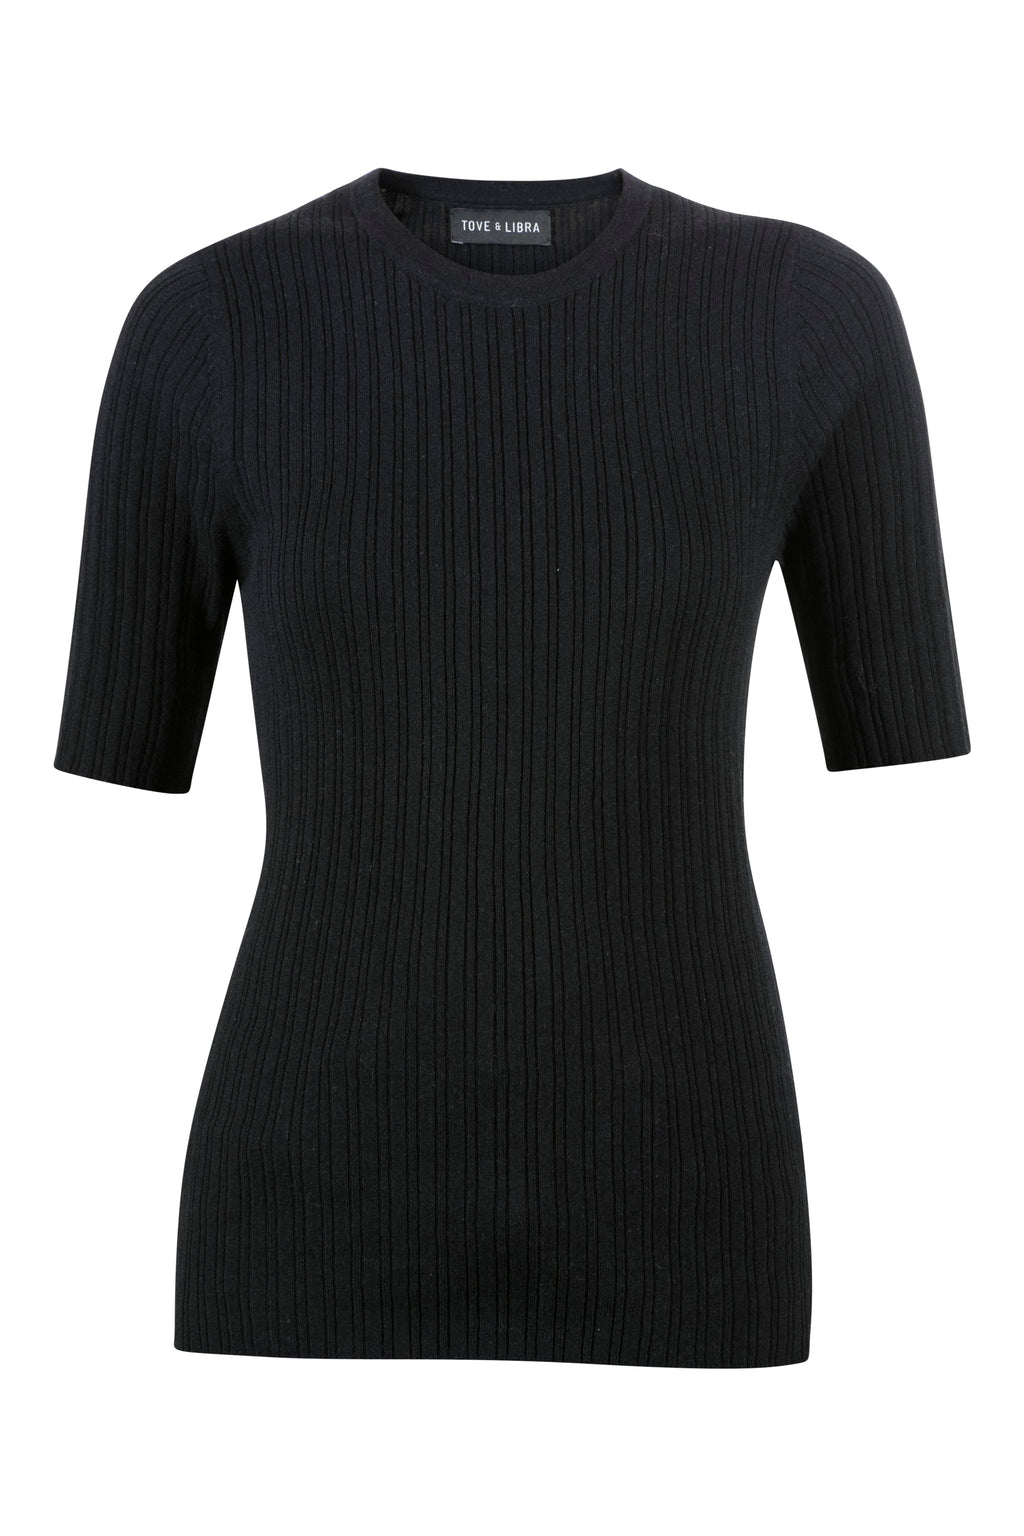 Essential Ribbed Tee - Black